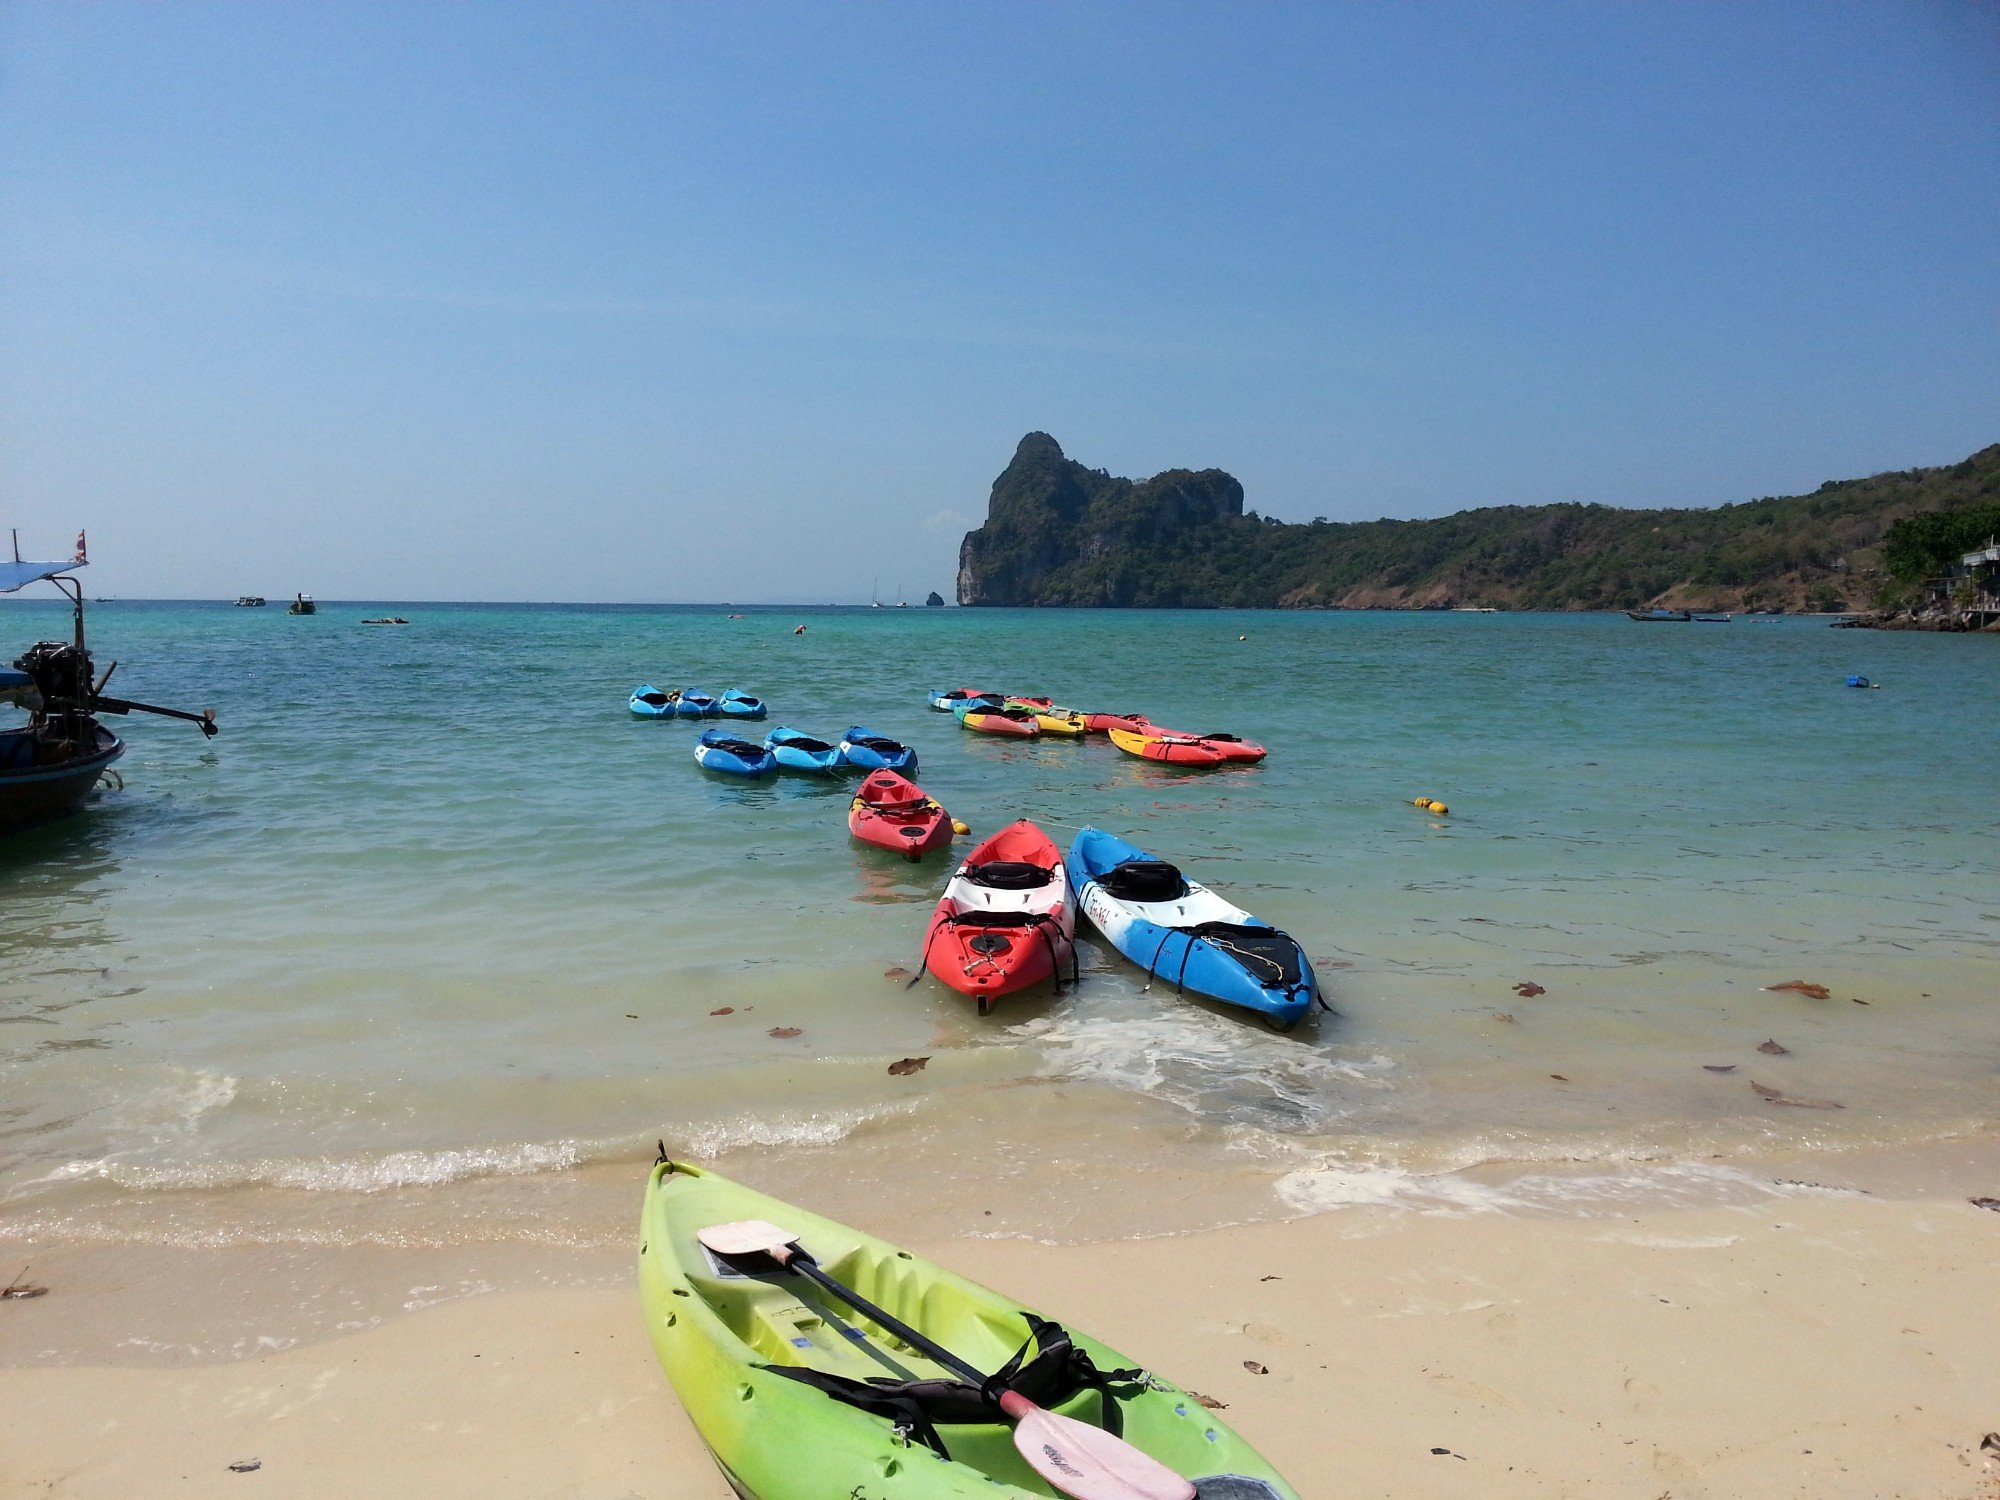 Kayaks on Loh Dalum Beach